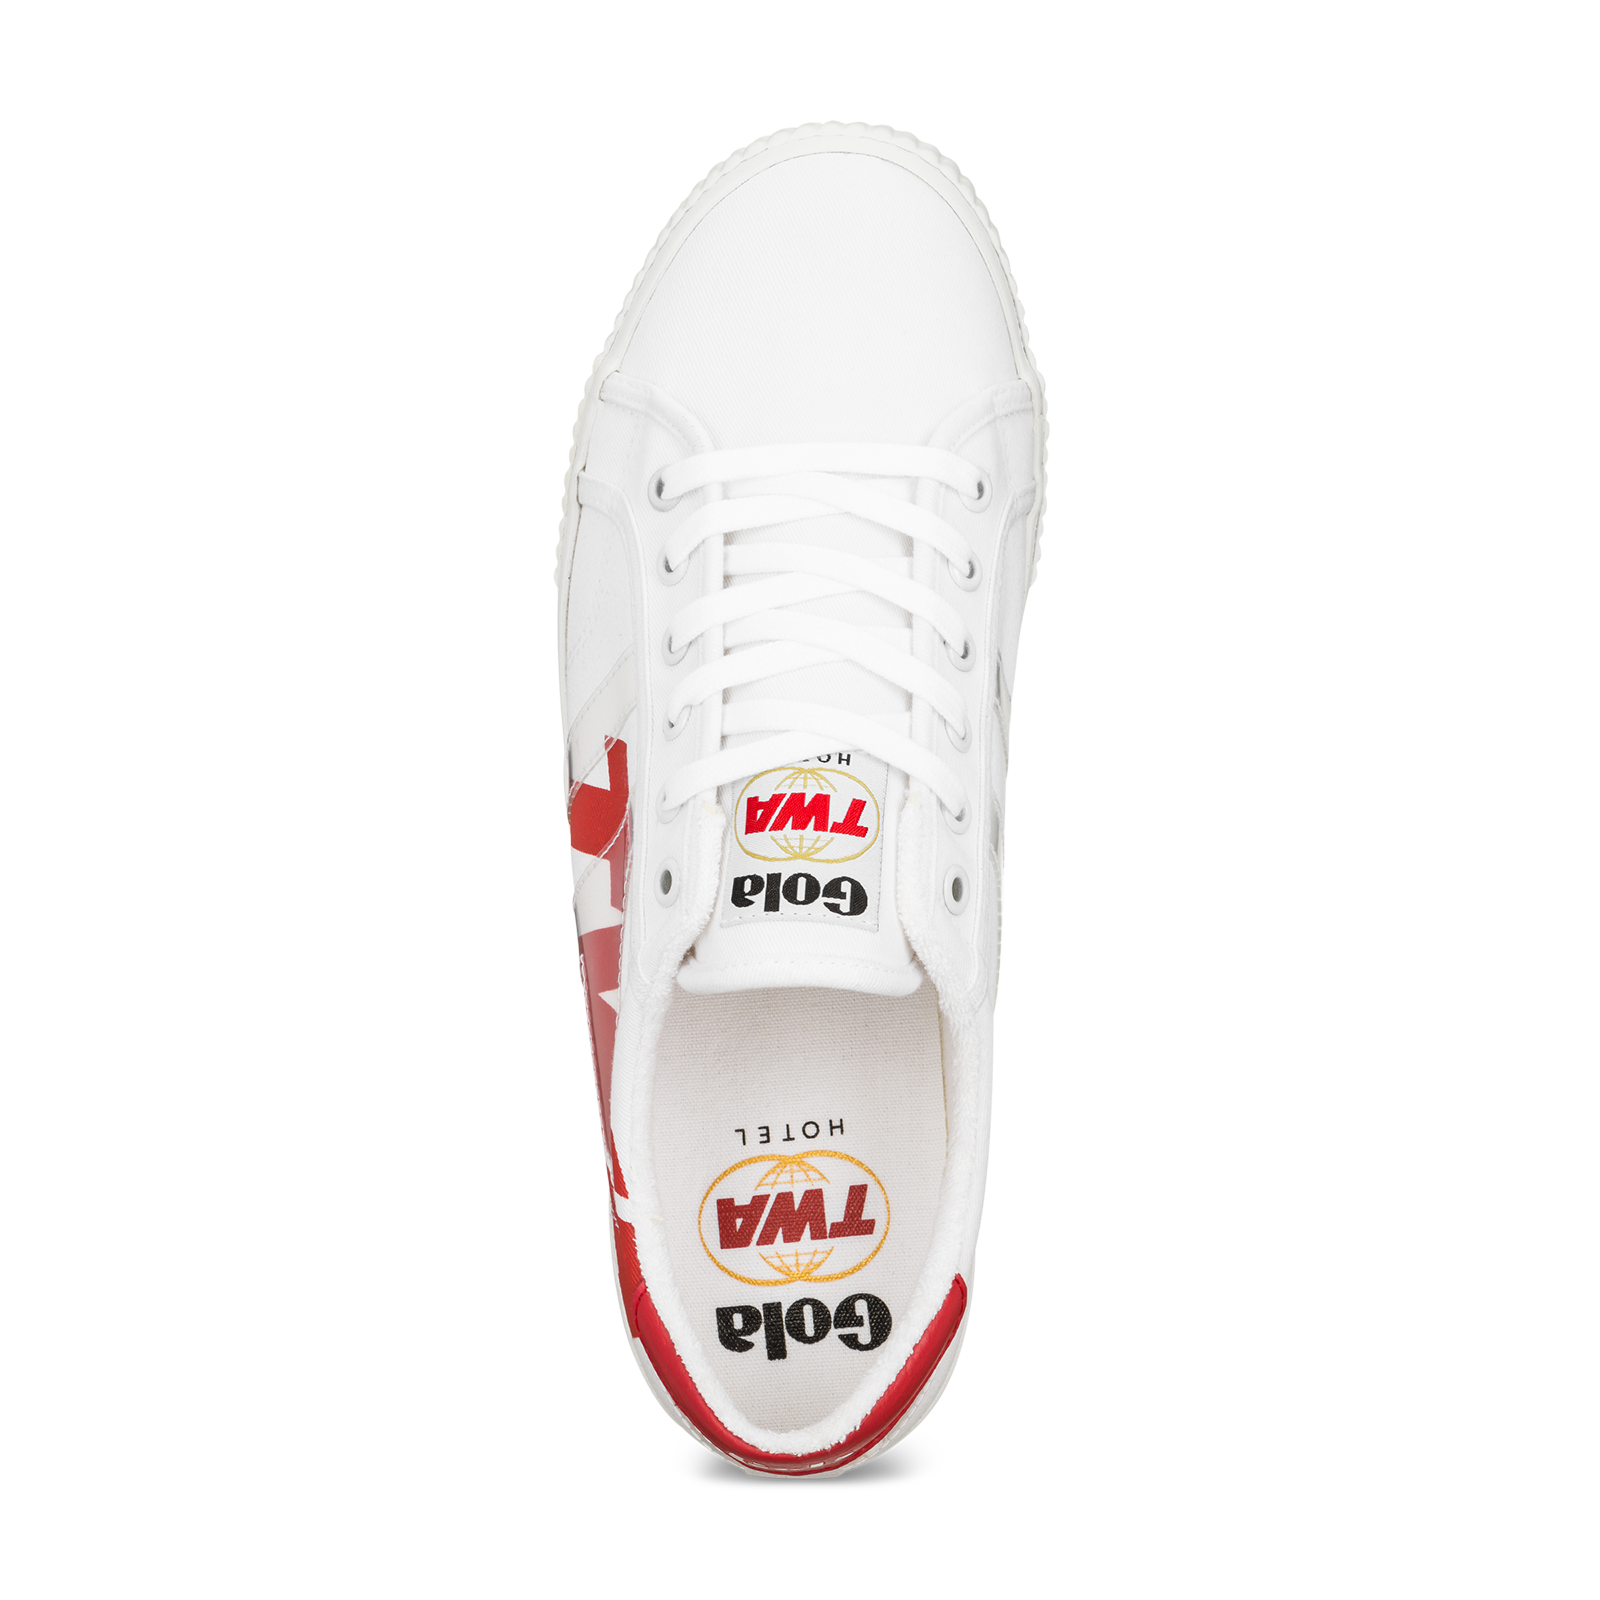 White sneaker product image